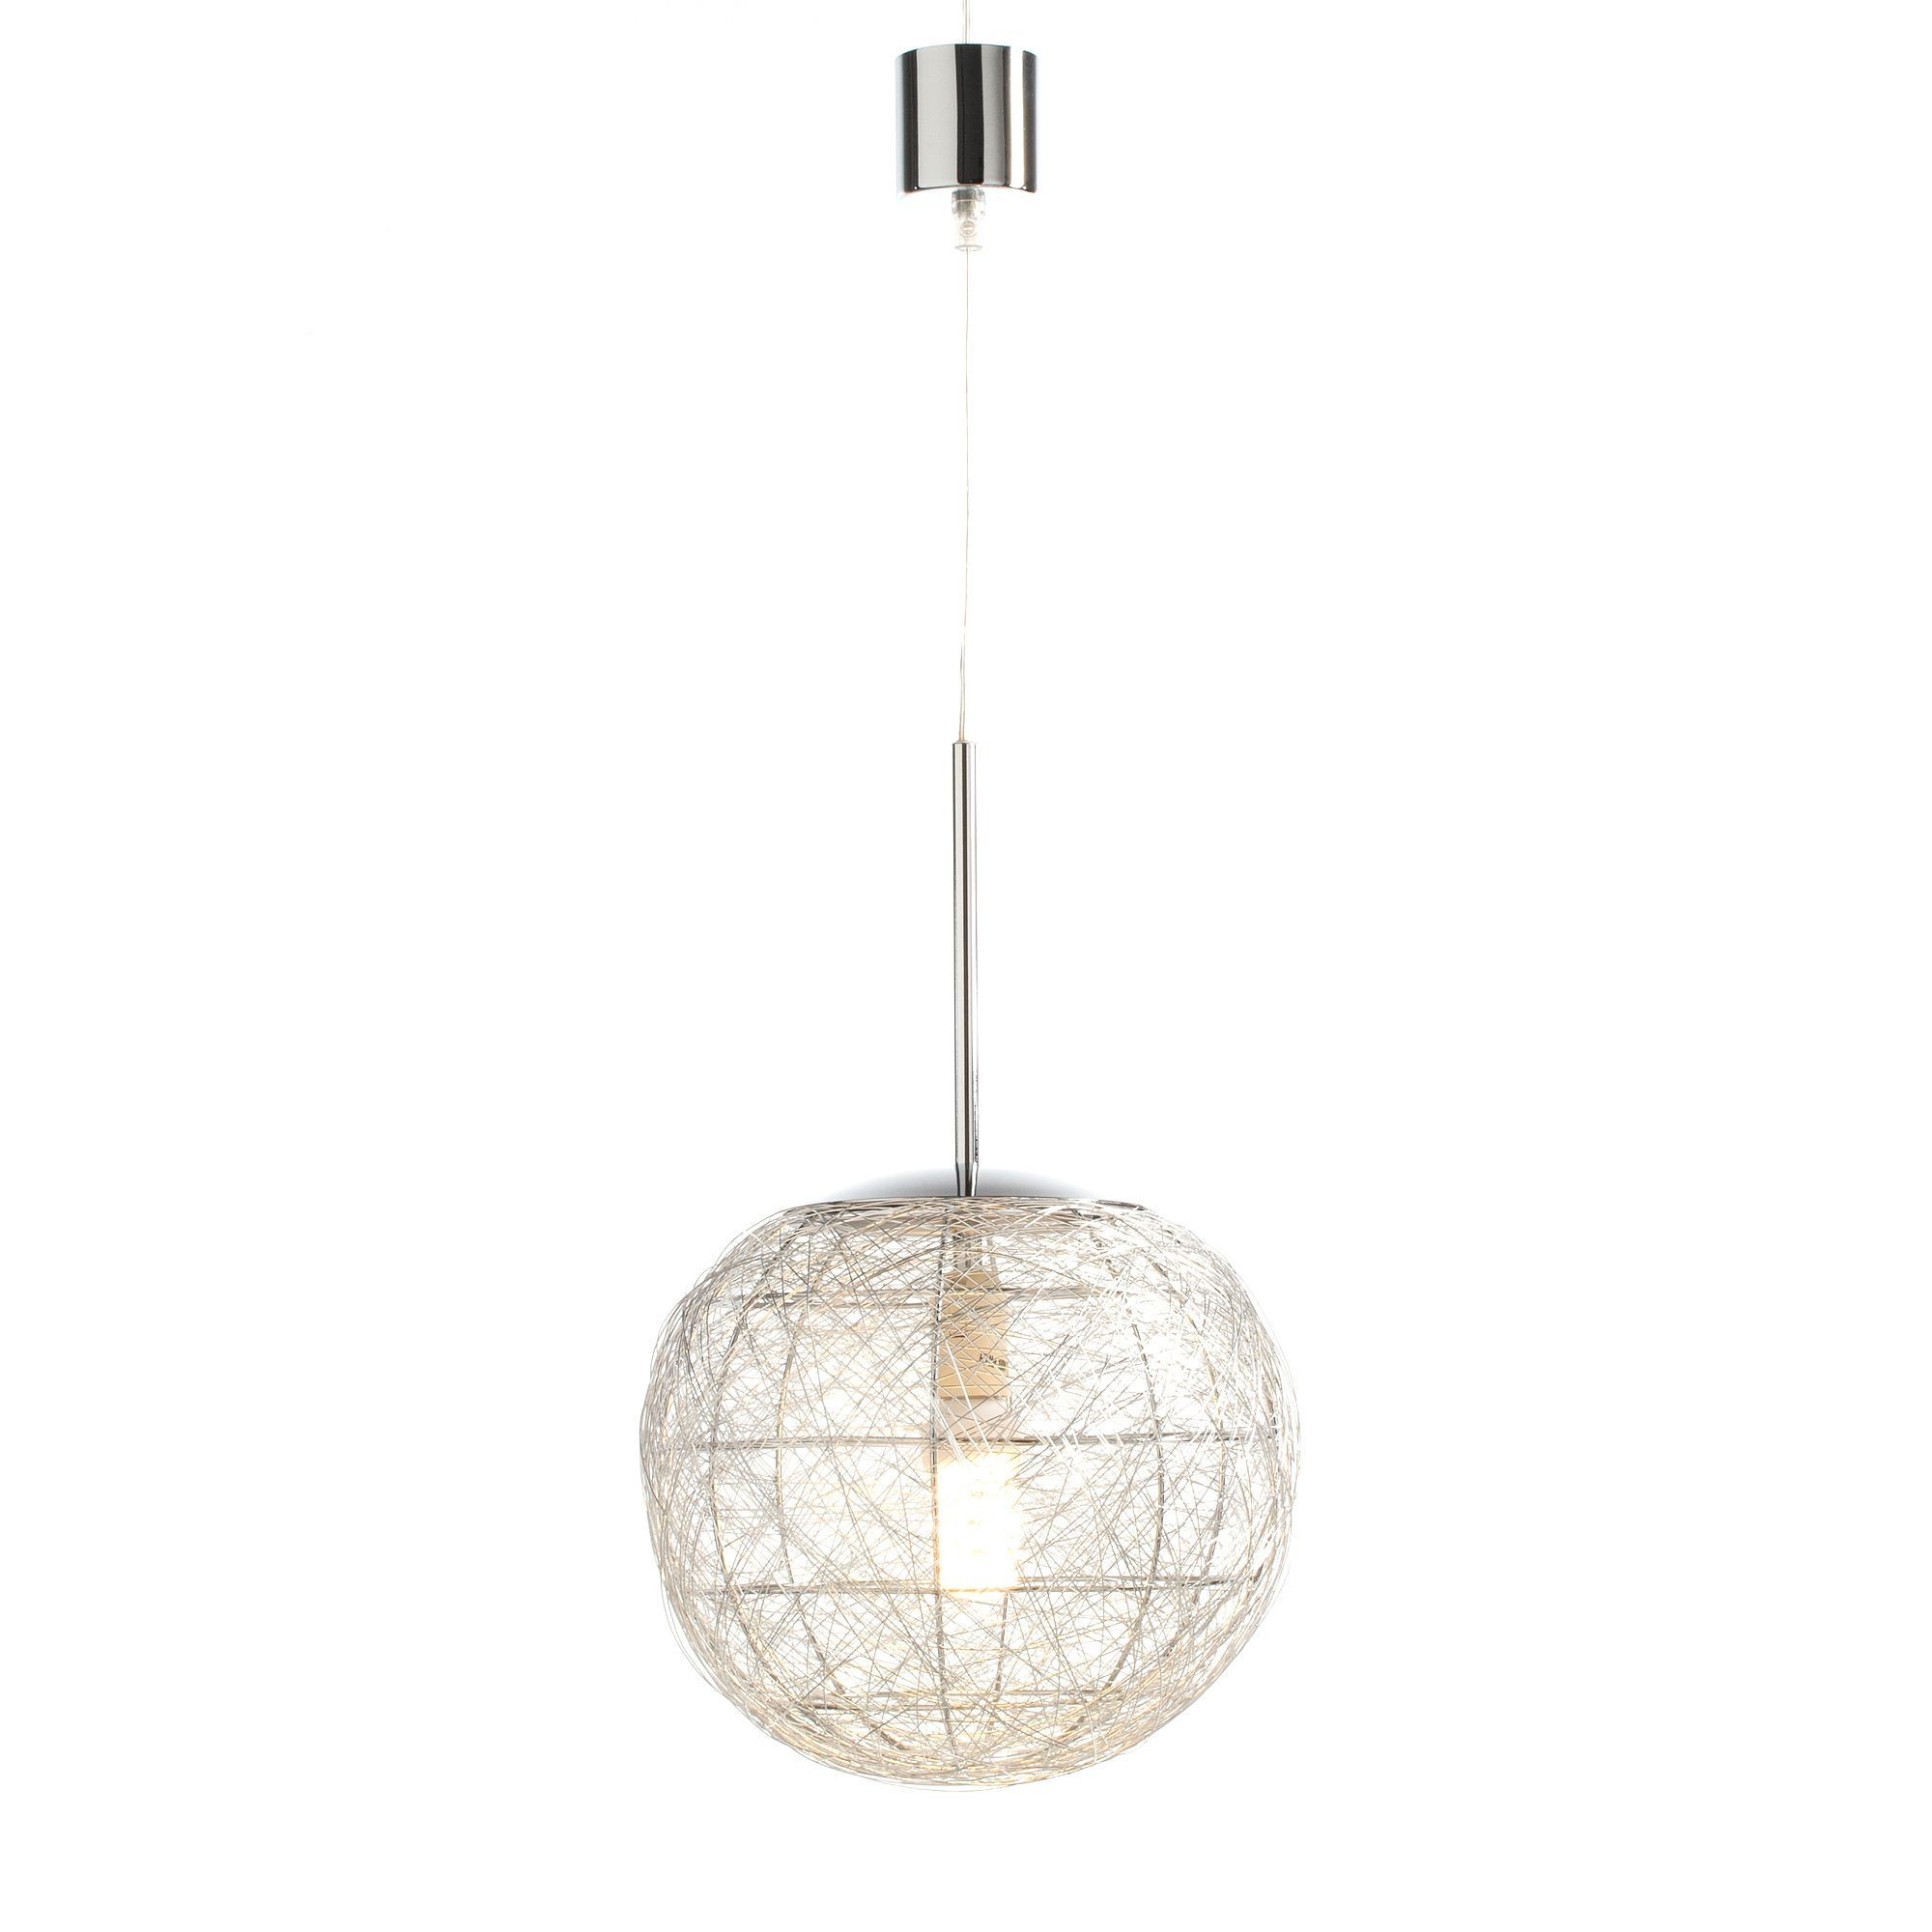 Boule Luminaire Suspension Boule Nickel Mat Filio Les Suspensions Et